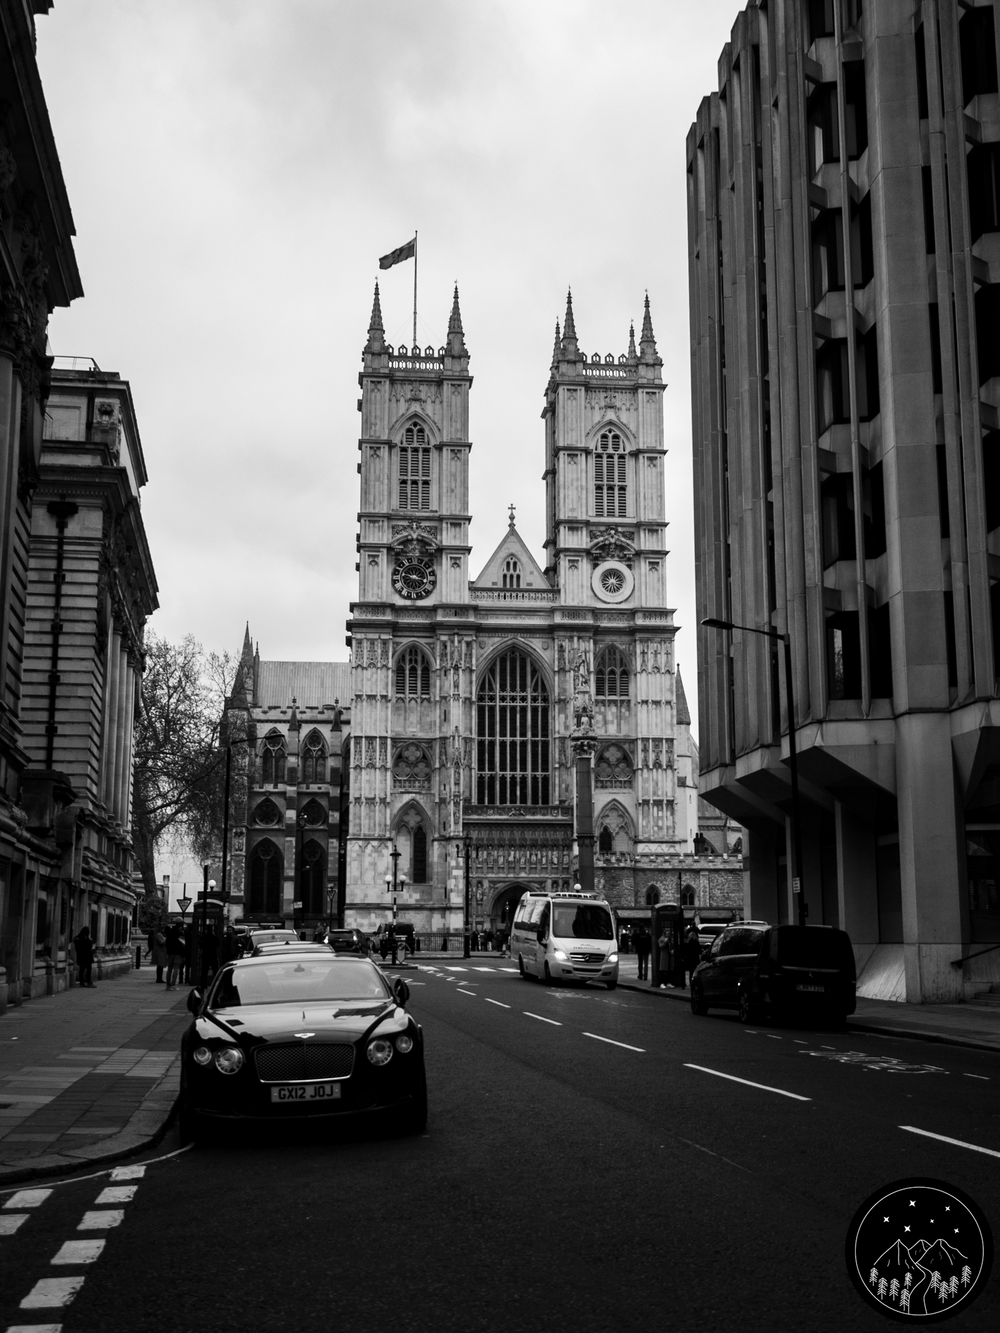 Image Description: Street view of Westminster Abbey.